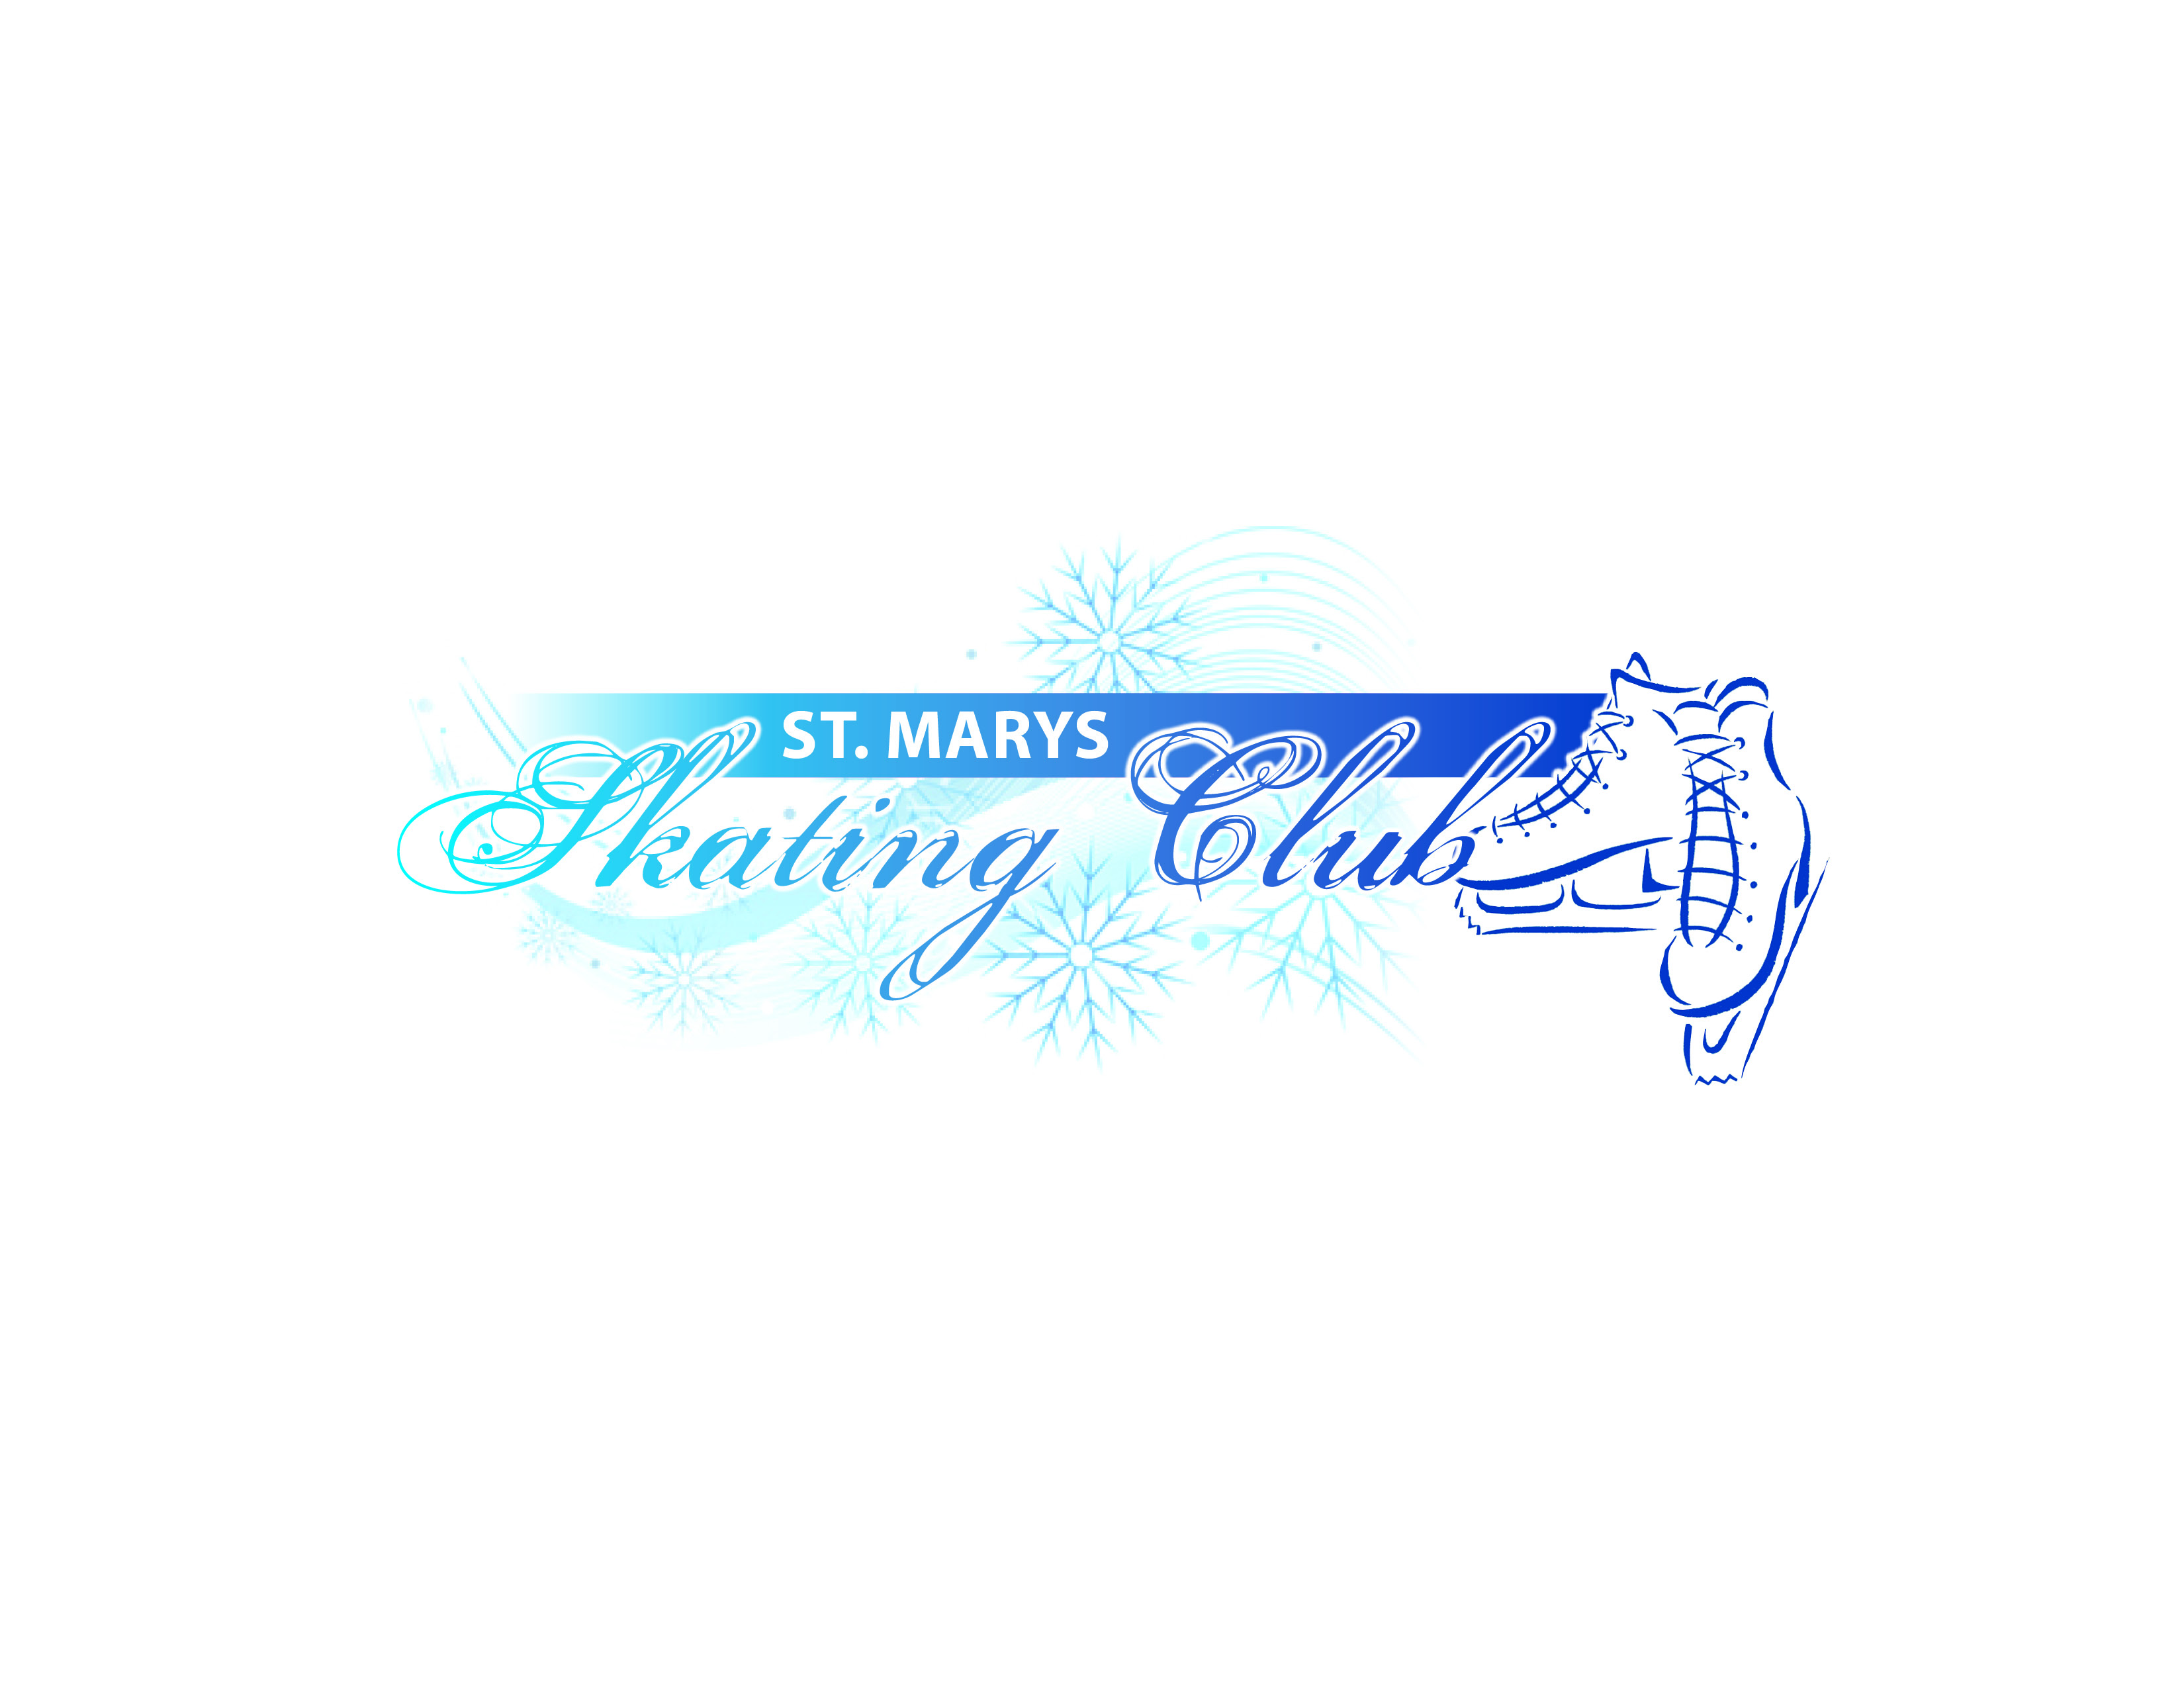 St. Mary's Skating Club